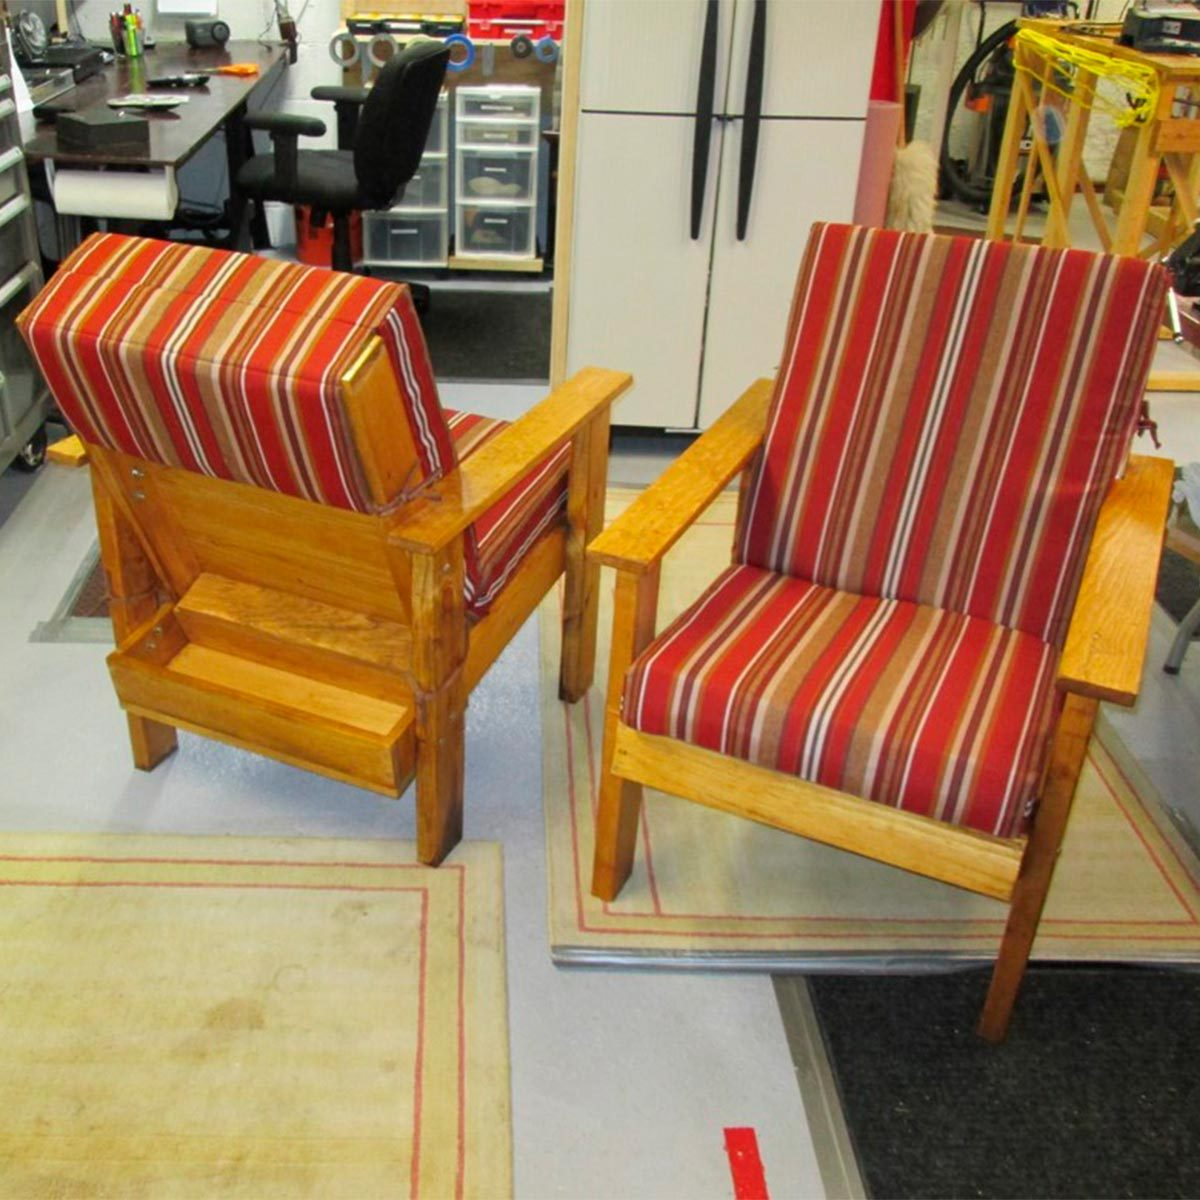 Patio Chairs with Storage